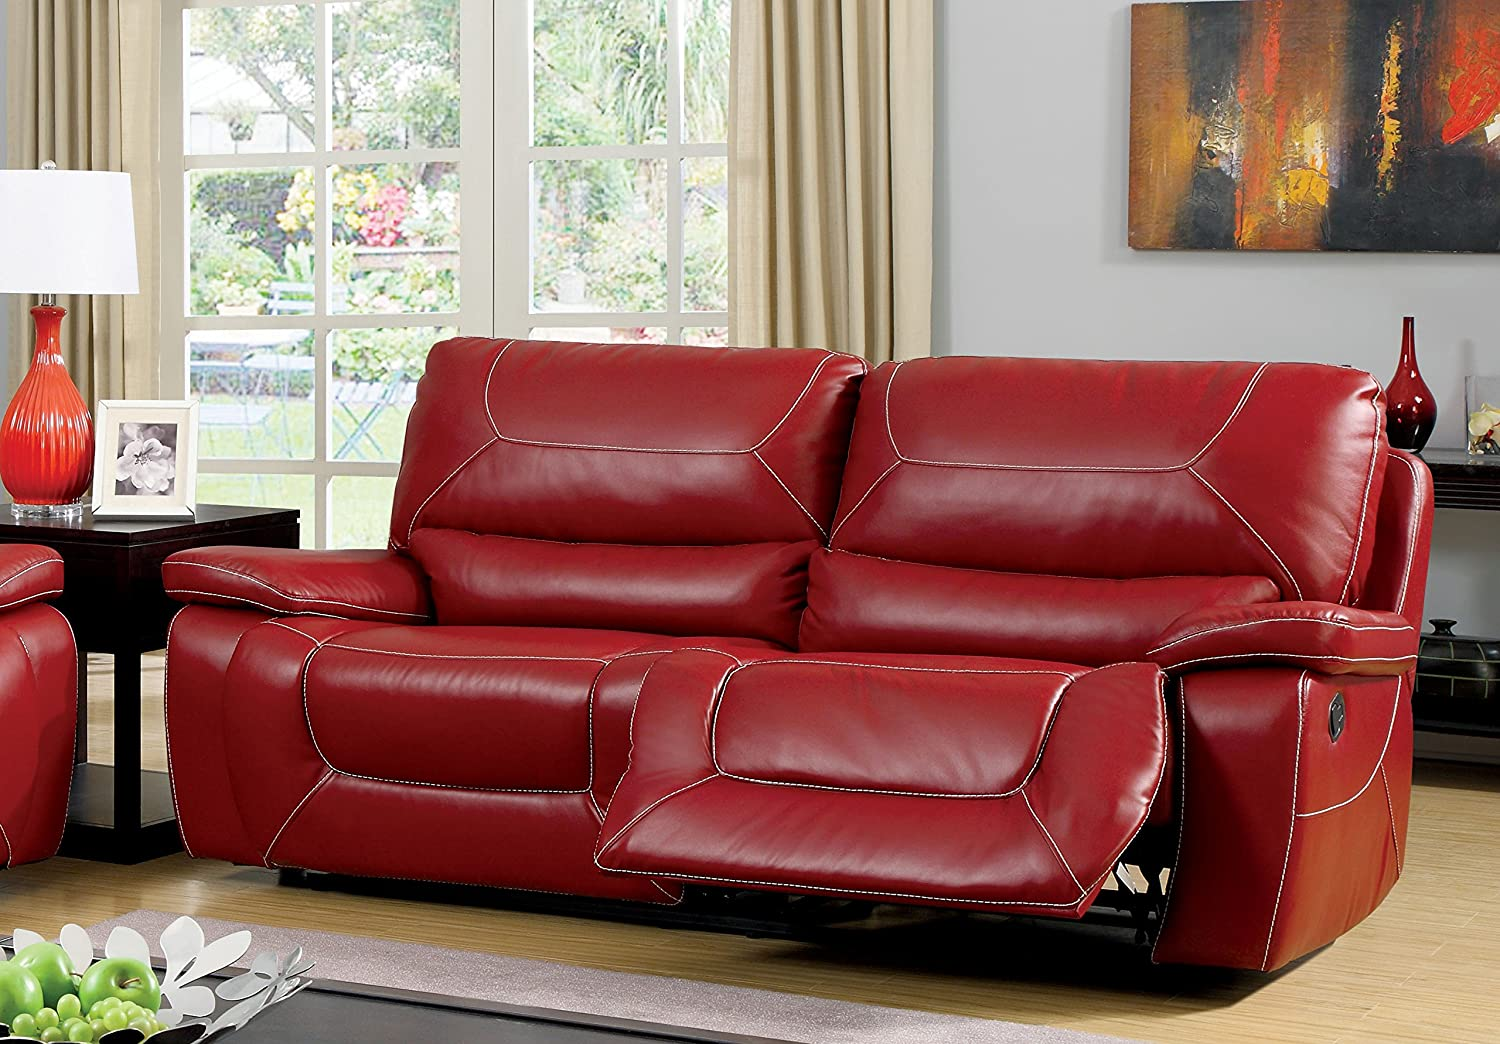 Amazon.com: Furniture Of America Dunham 2 Recliner Sofa, Red: Kitchen U0026  Dining